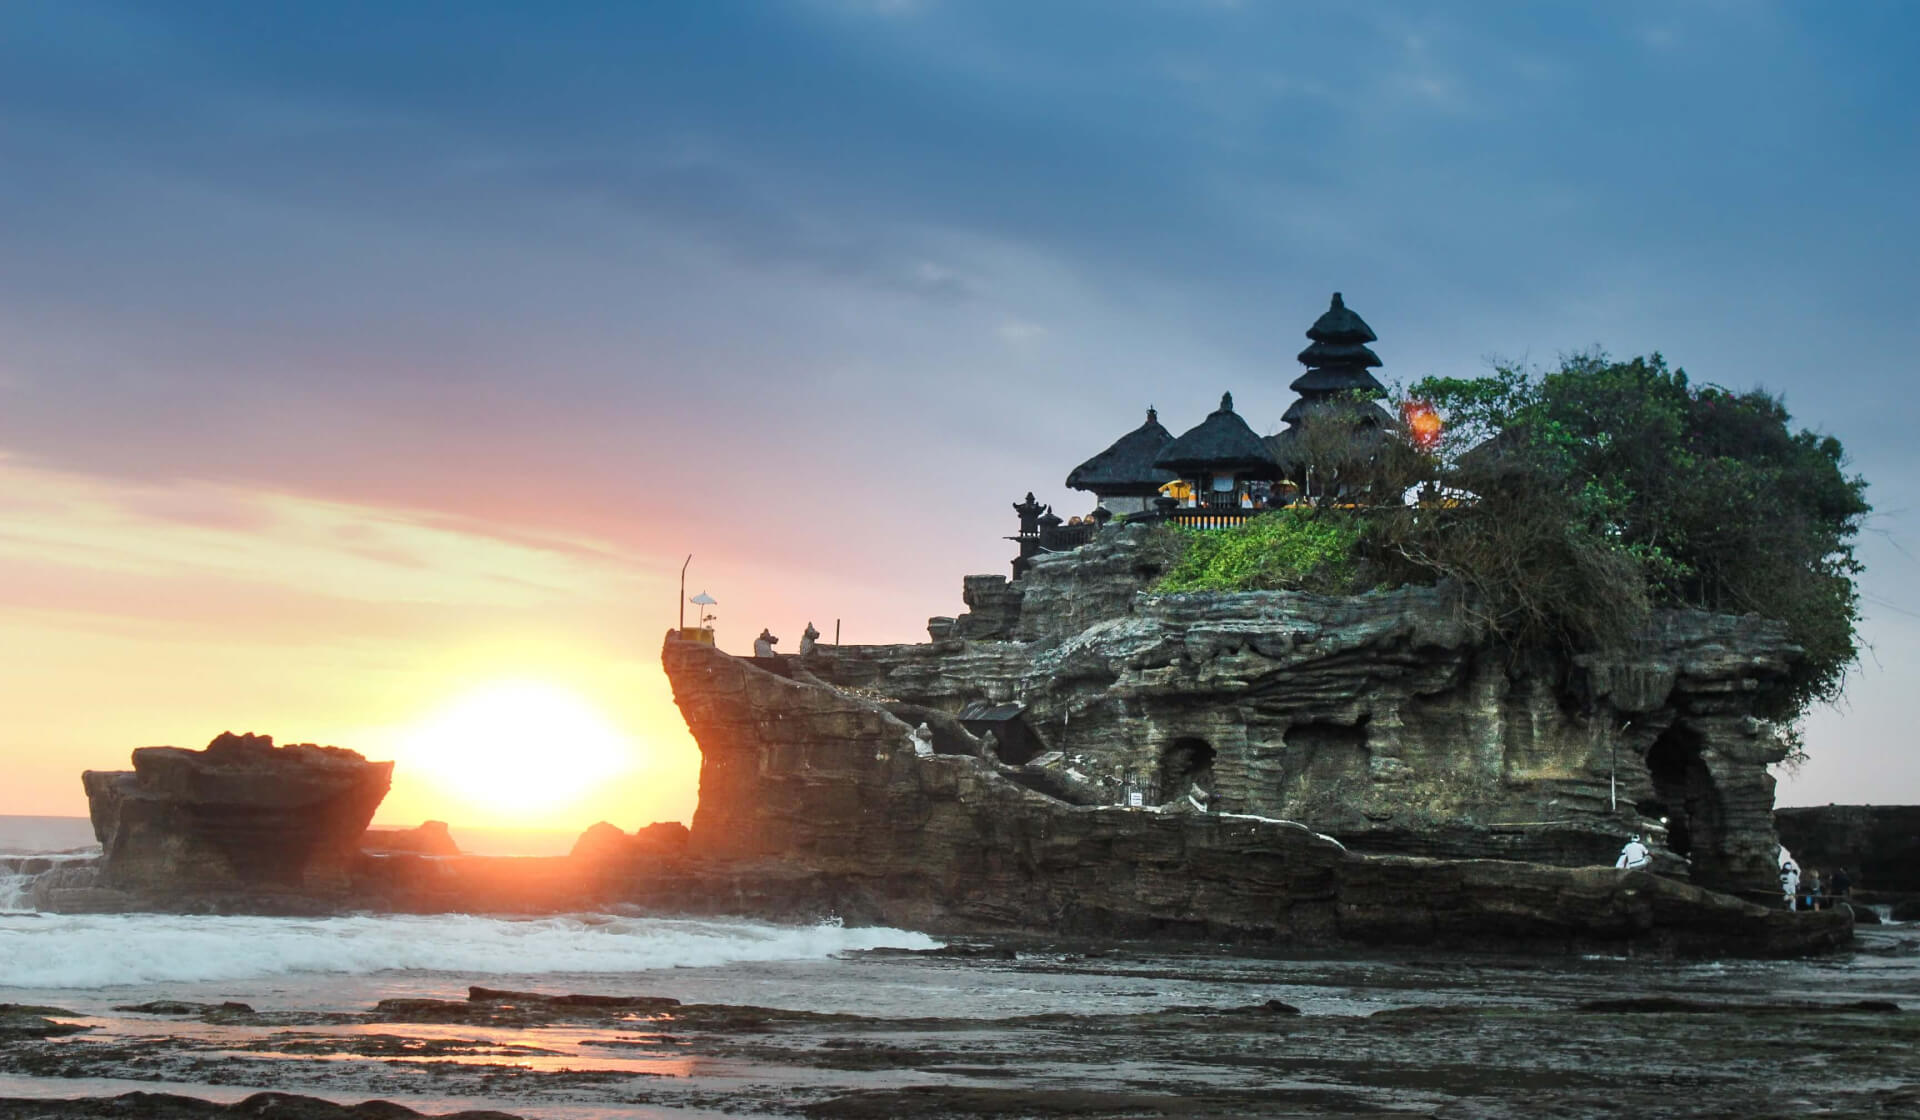 Balinese temple on a rock formation over the ocean with the sun setting behind it